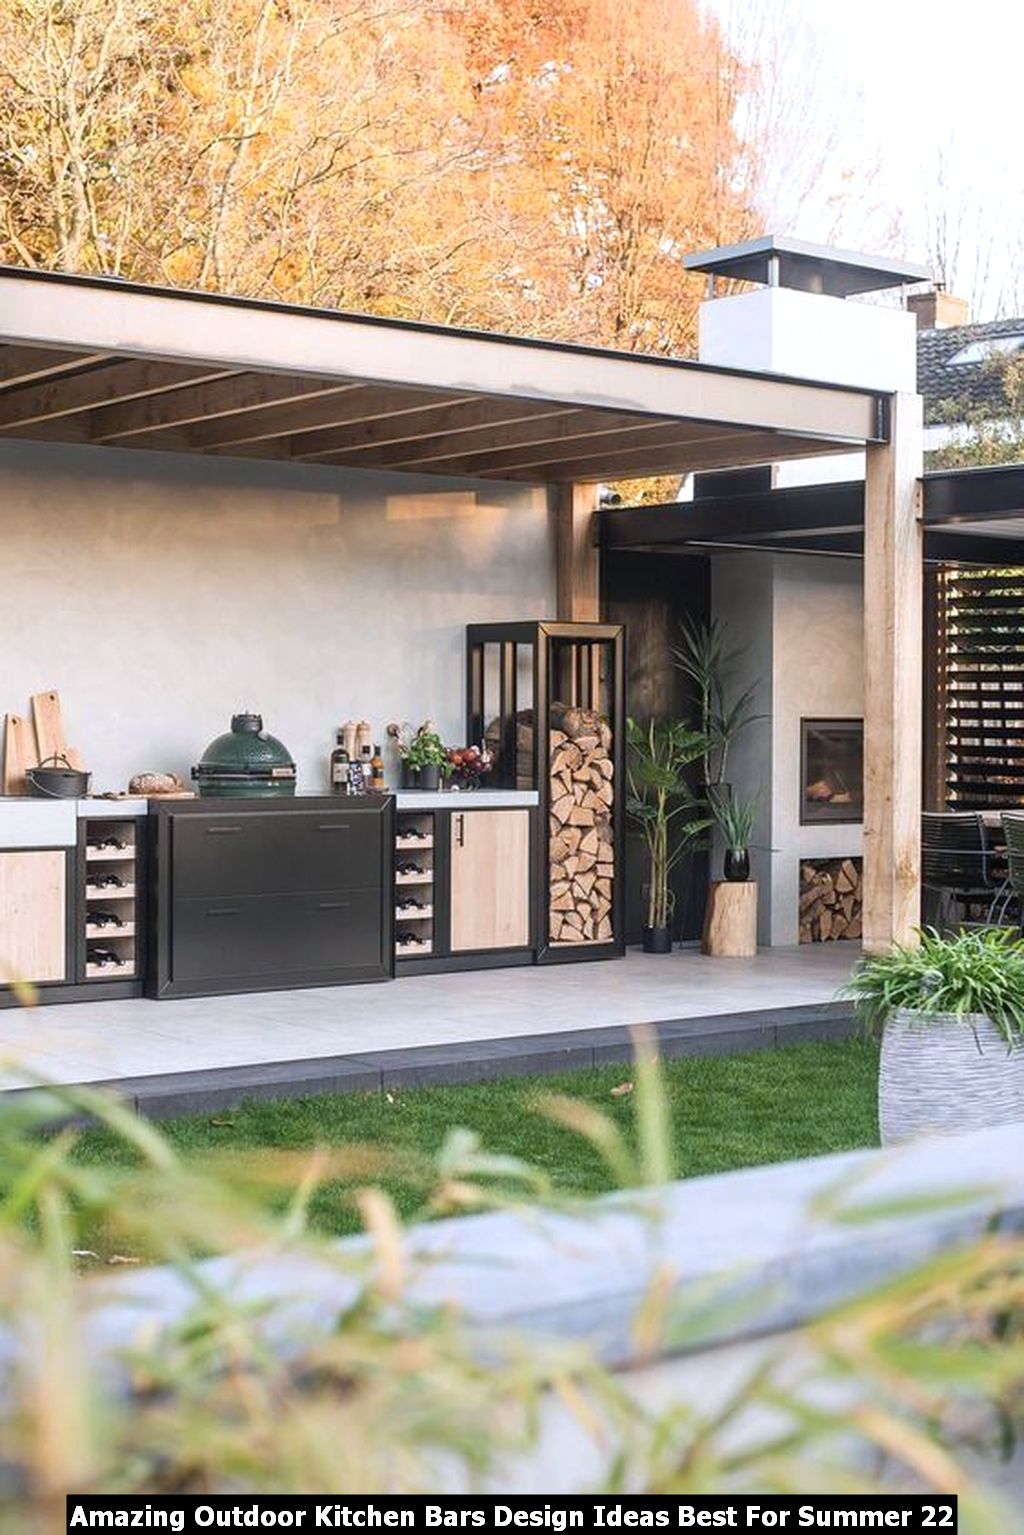 Amazing Outdoor Kitchen Bars Design Ideas Best For Summer 22